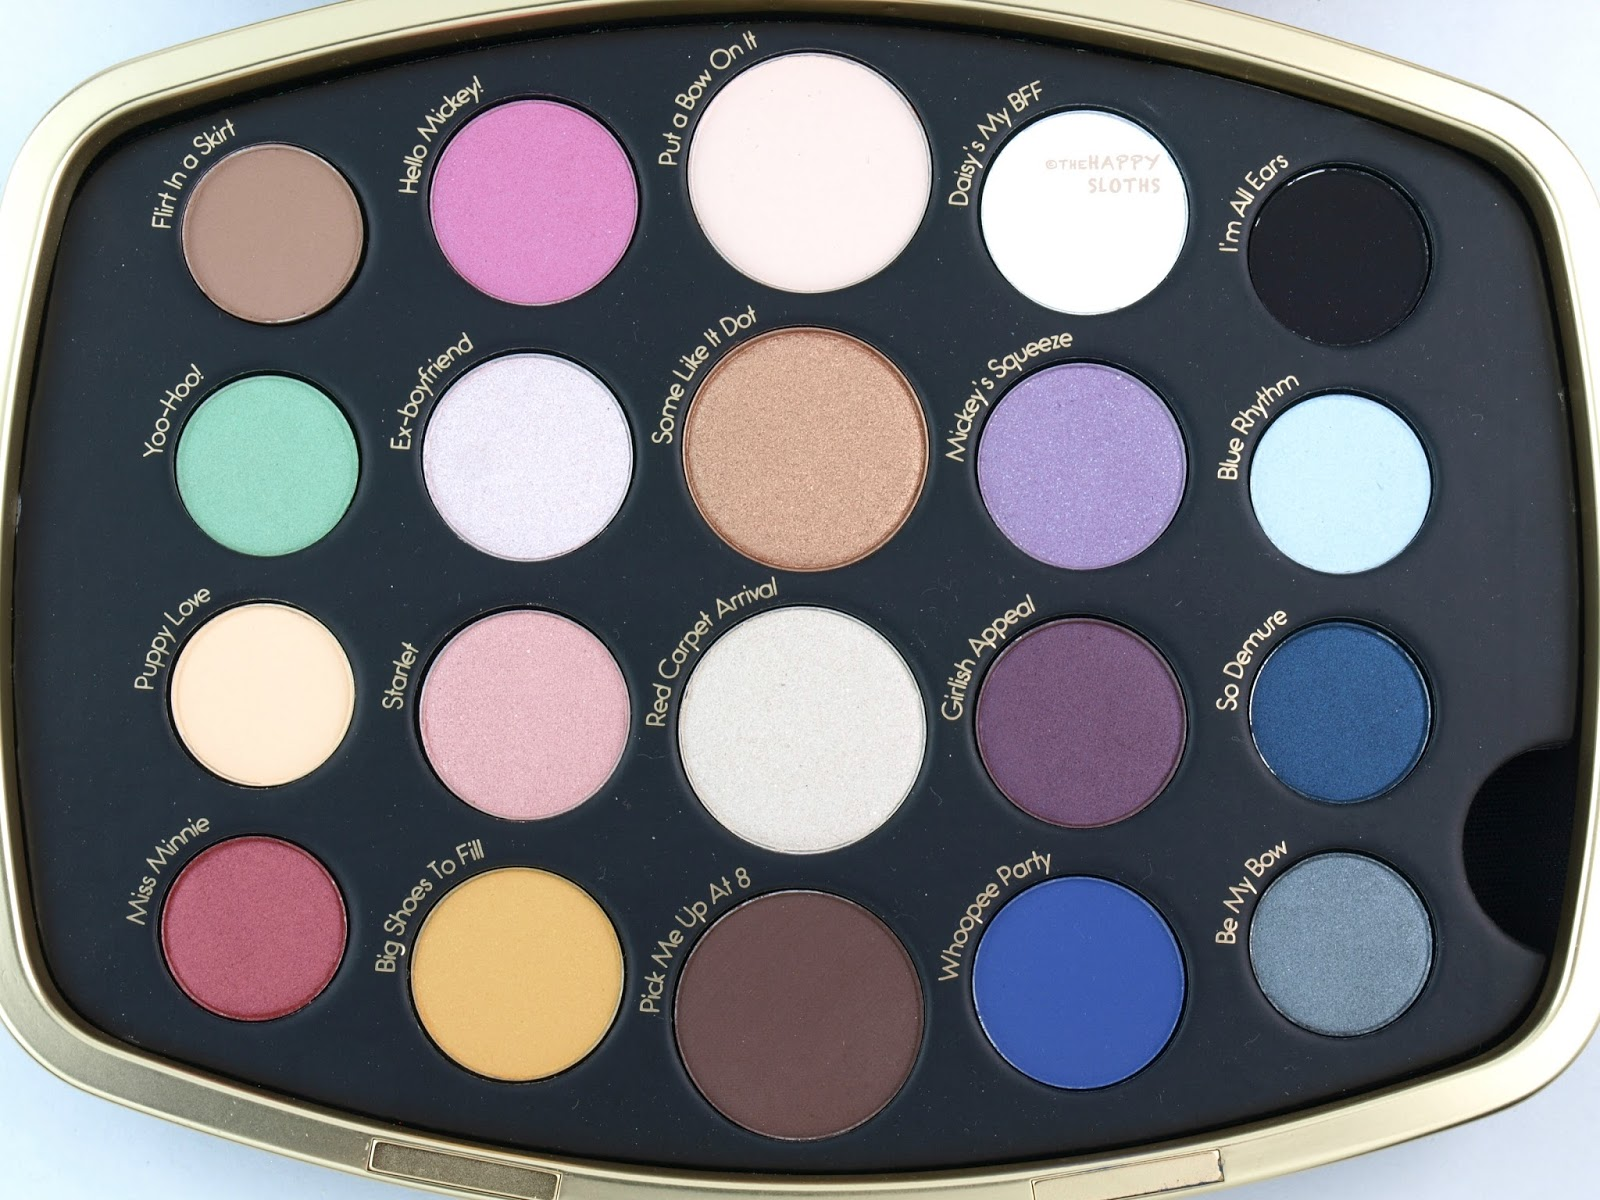 sephora makeup eyeshadow palette. sephora minnie mouse collection minnie\u0027s world in color eyeshadow palette: review and swatches makeup palette